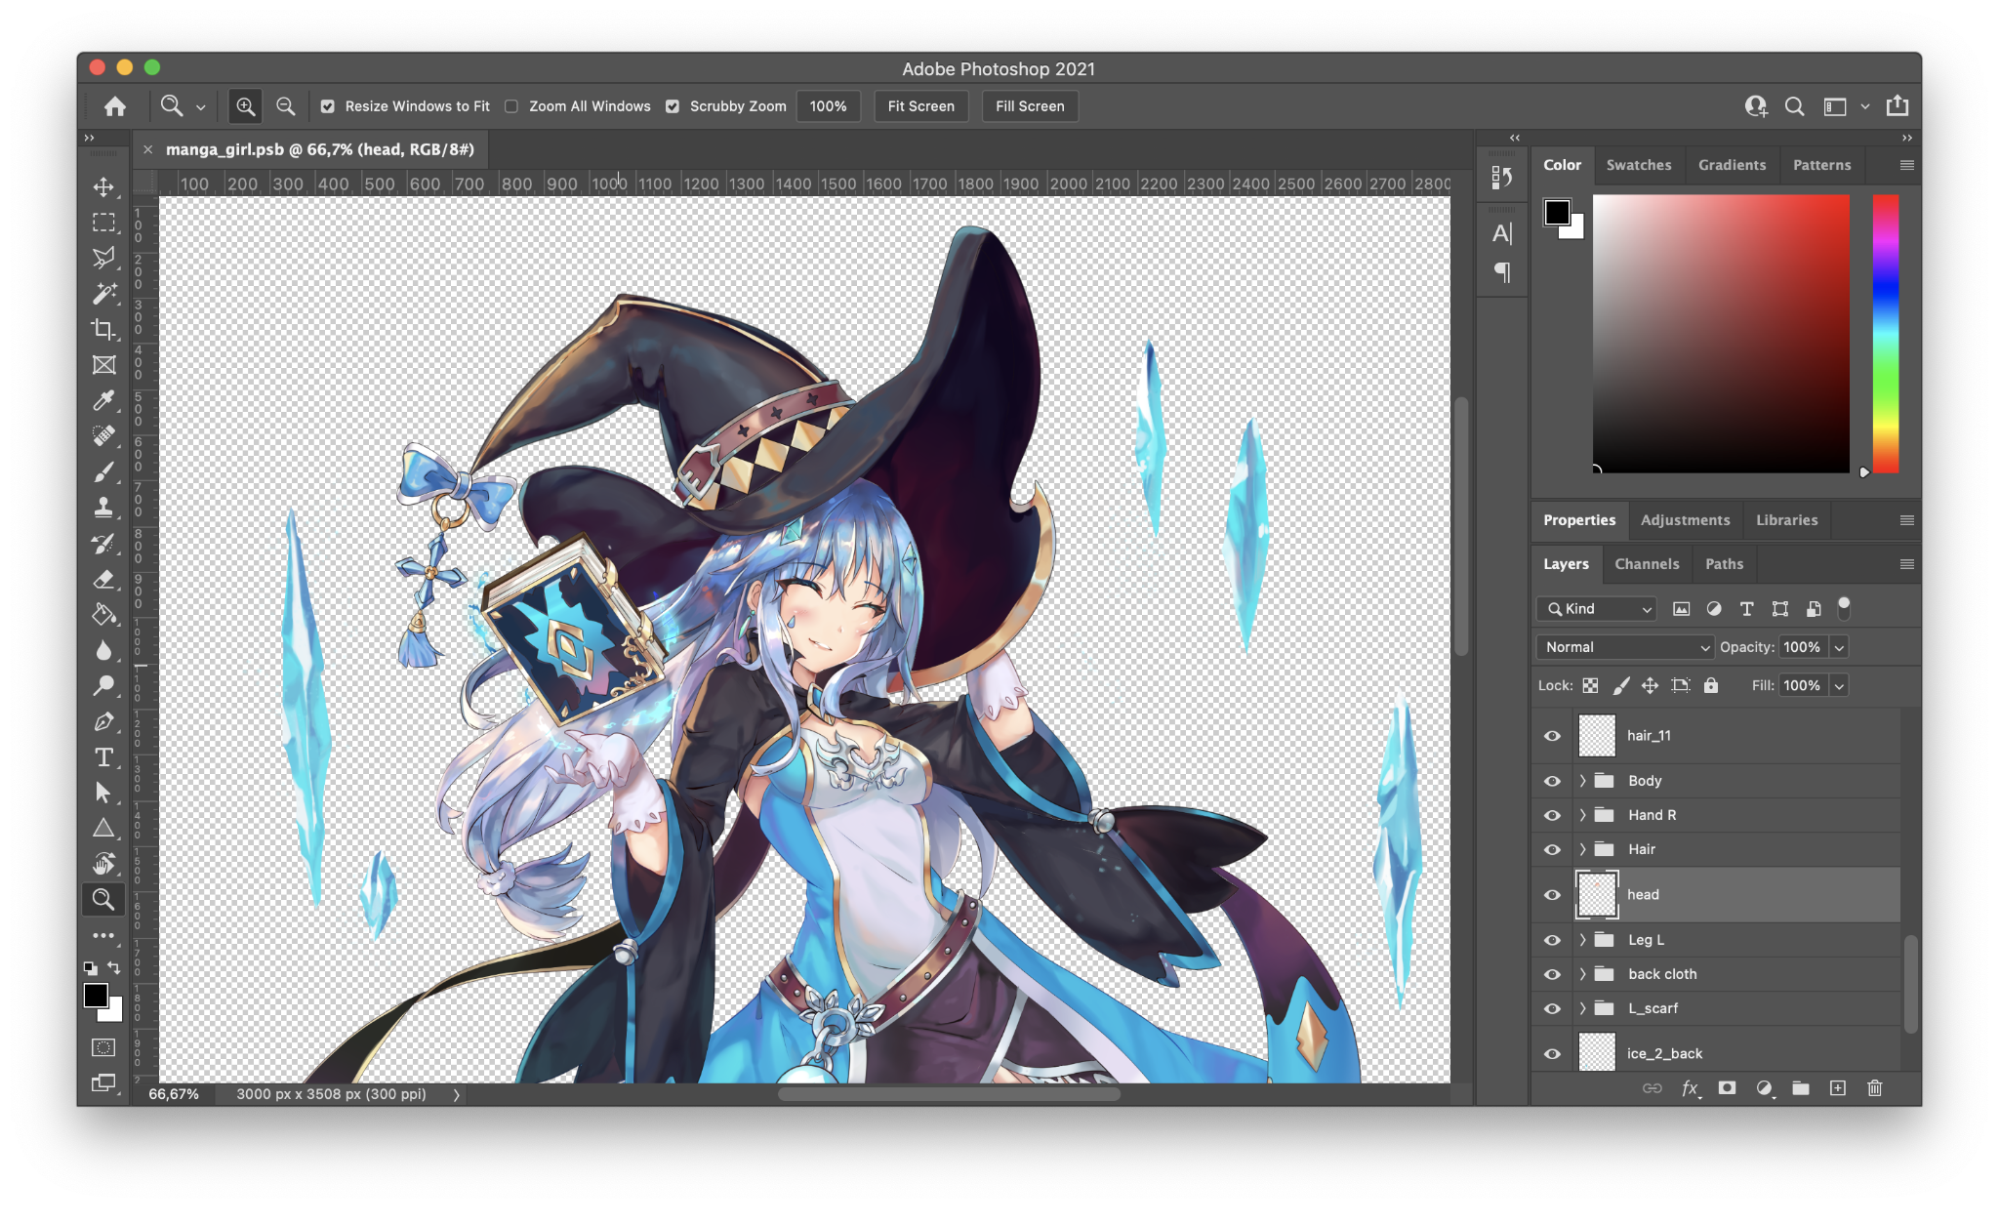 A photoshop file of a happy witch with blue hair